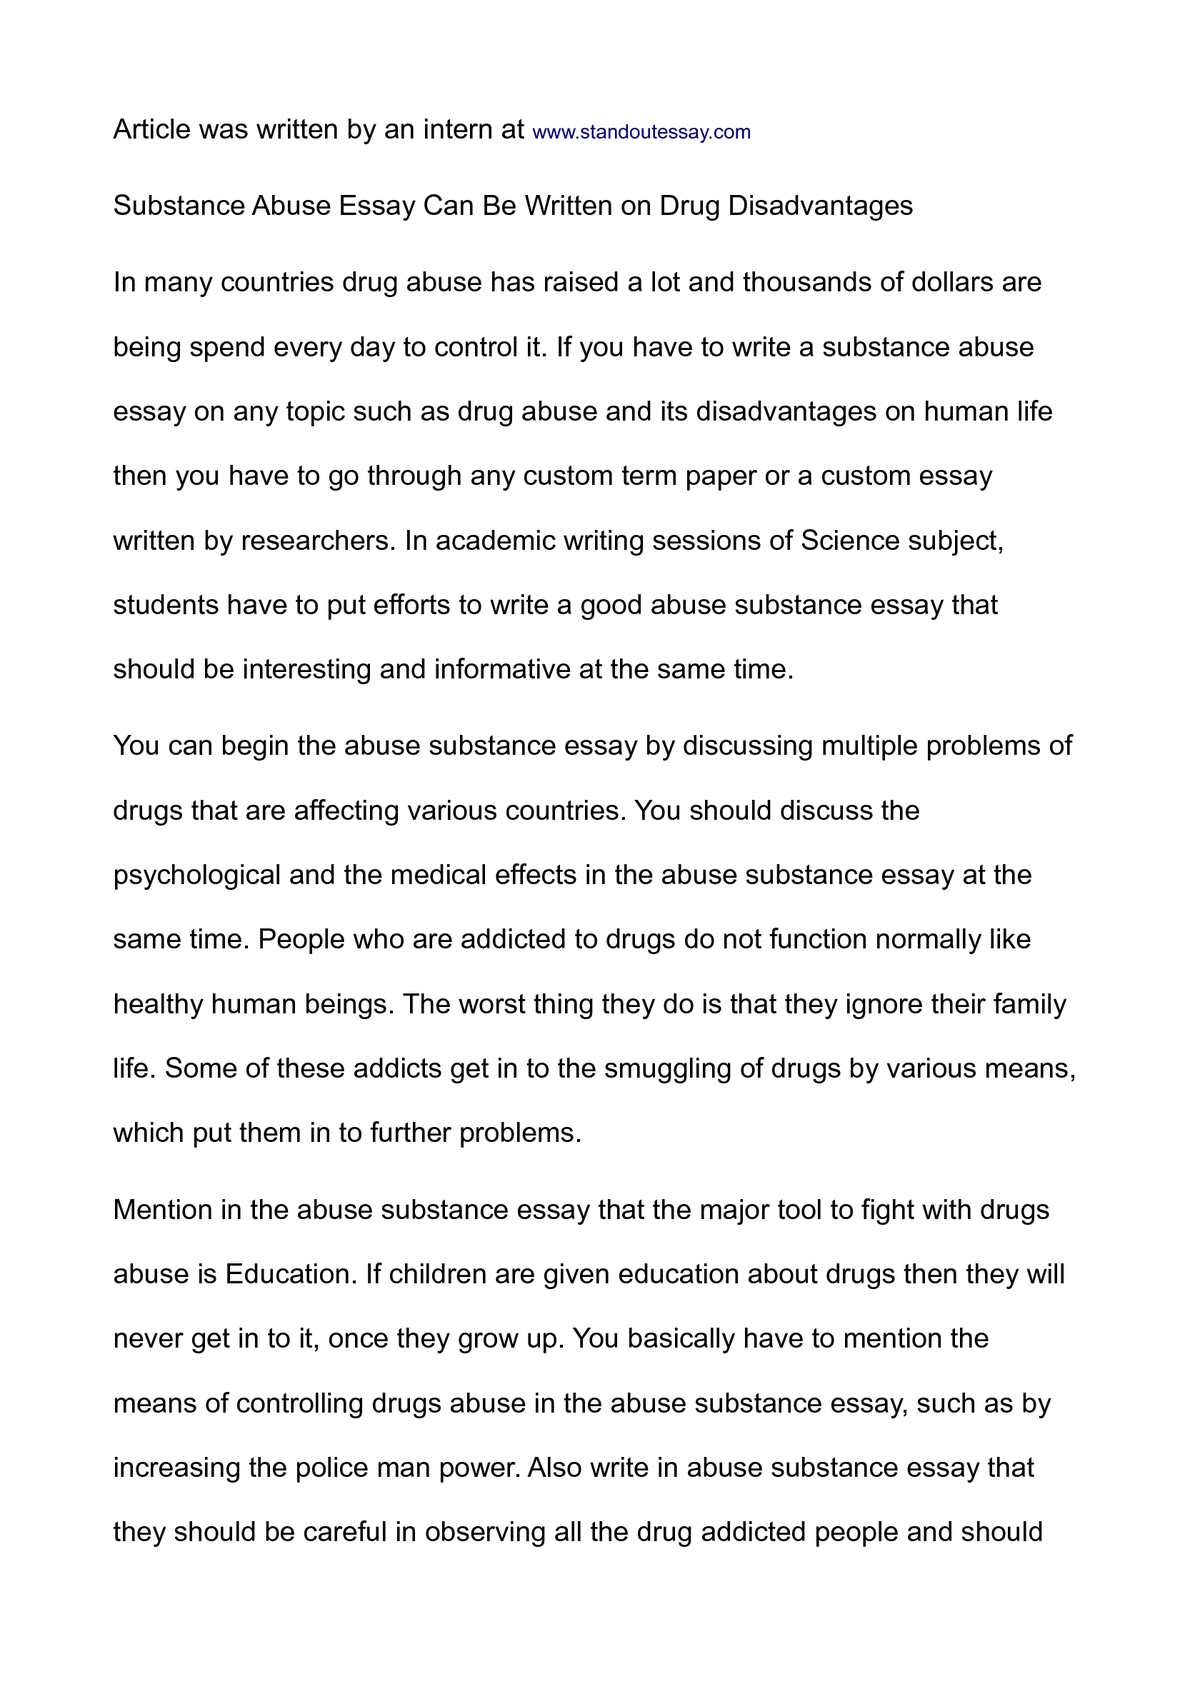 calam atilde copy o substance abuse essay can be written on drug disadvantages